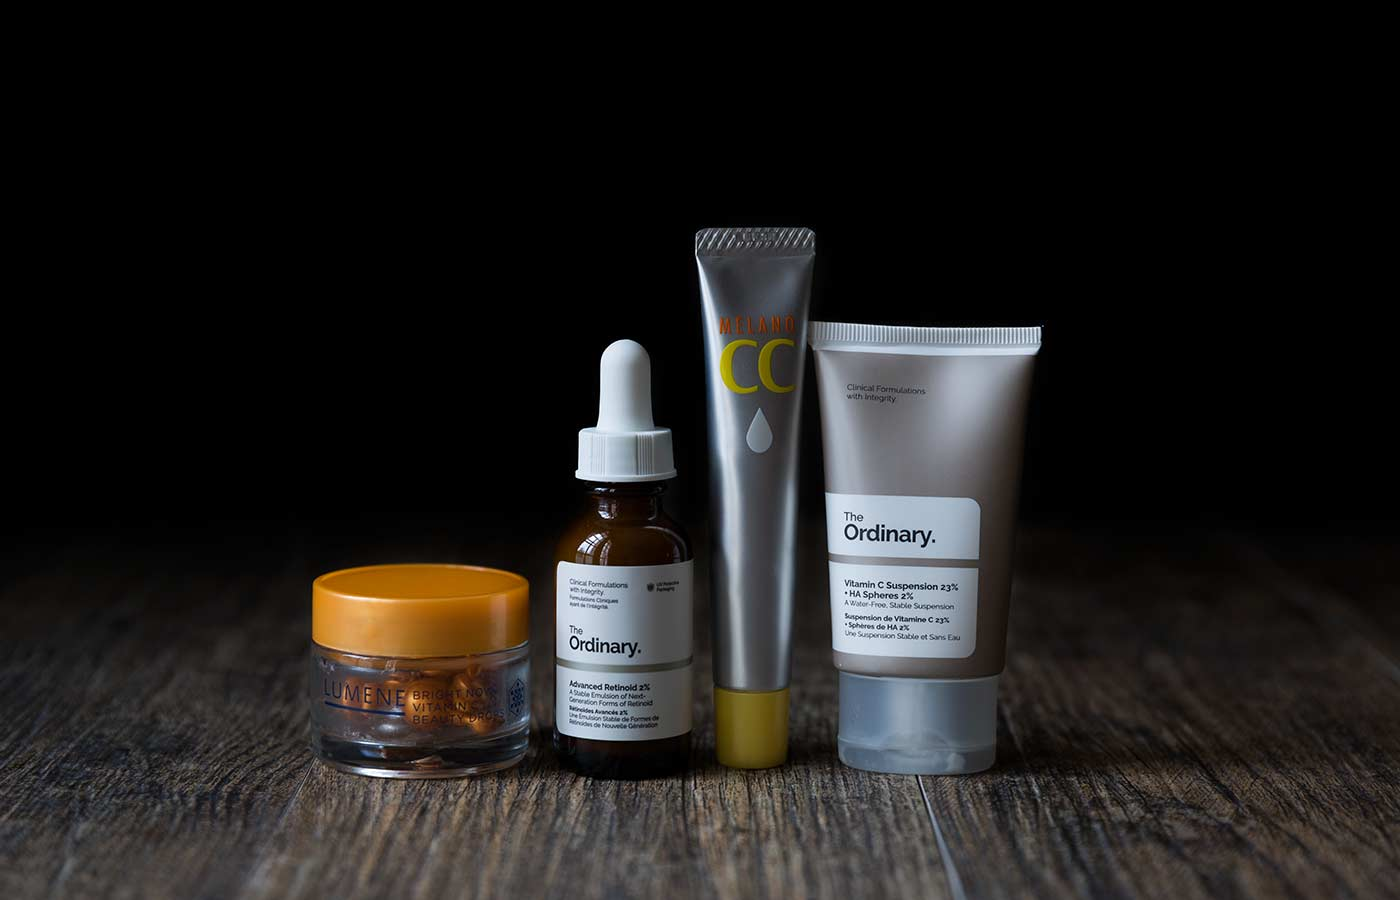 A photo of Vitamin C serums and The Ordinary's Advanced 2% Retinoid